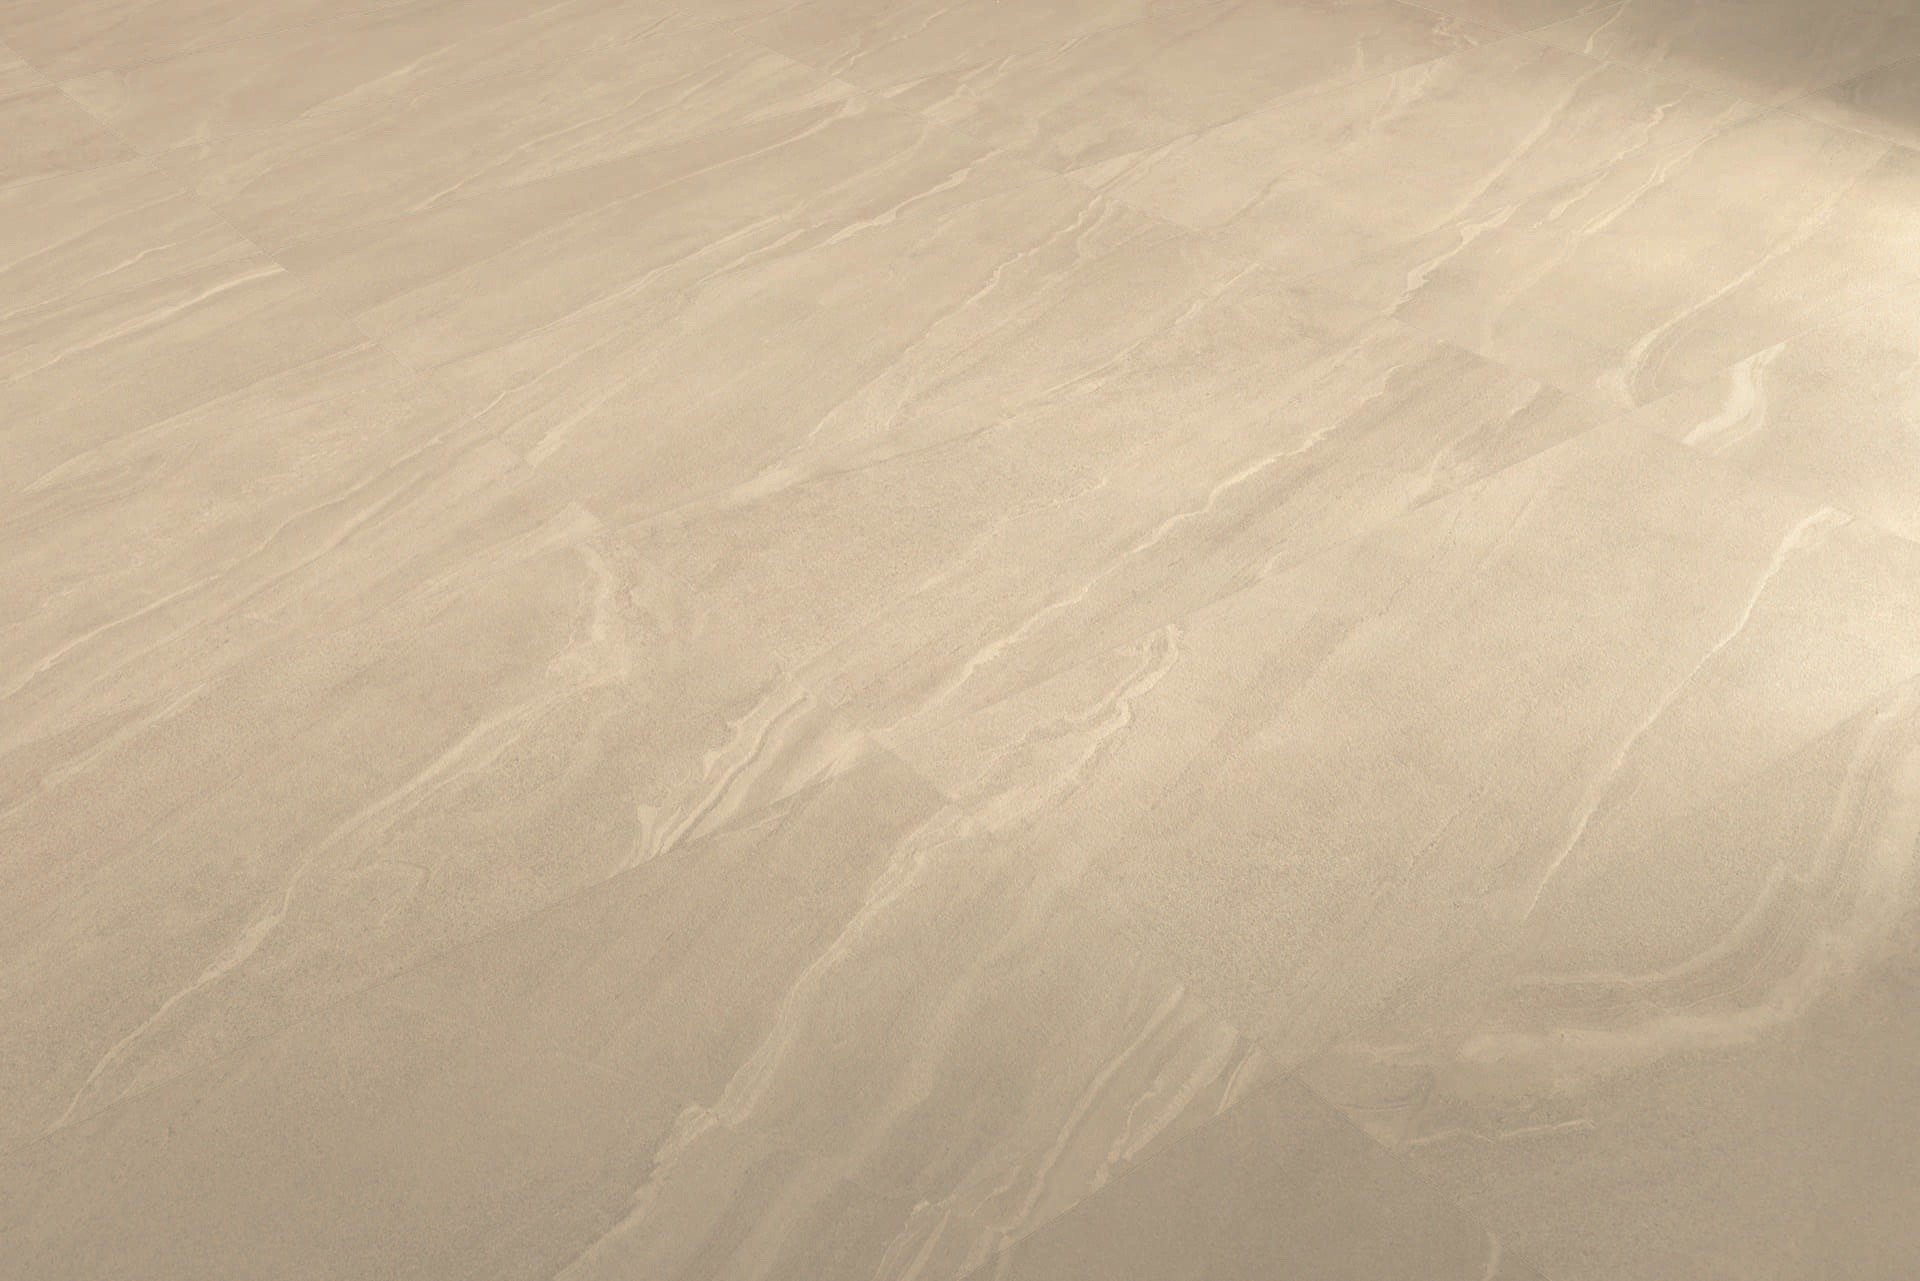 Zerodesign Pietra Indian Beige Naturale Pav